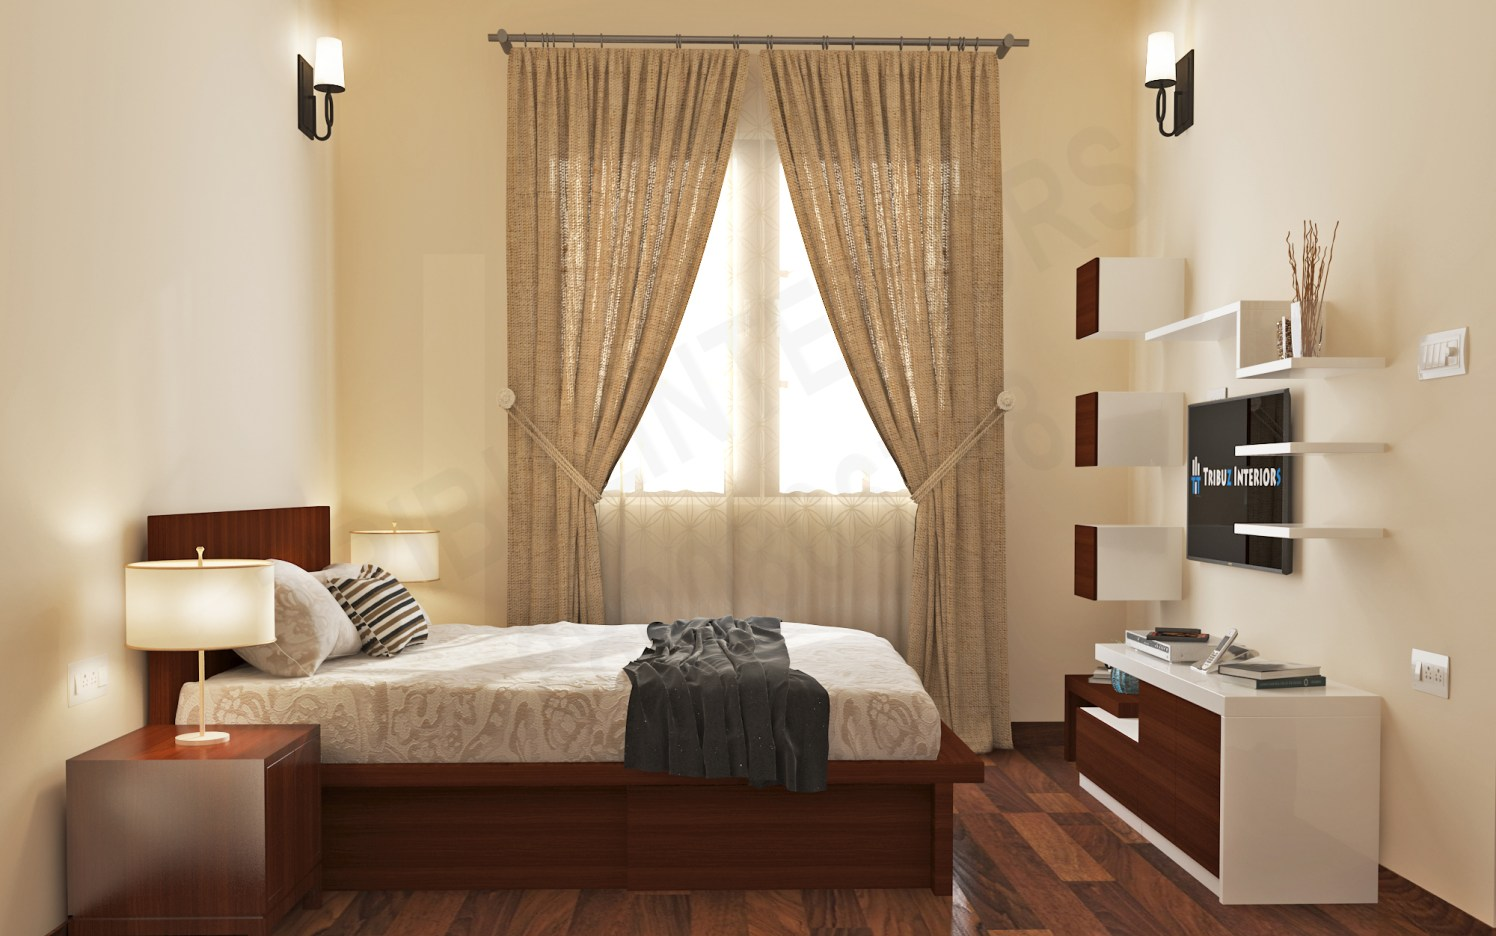 Coffee And Cream Combo Bedroom With Wooden Bed And TV Unit by Tribuz Interiors Pvt. Ltd. Bedroom Modern | Interior Design Photos & Ideas